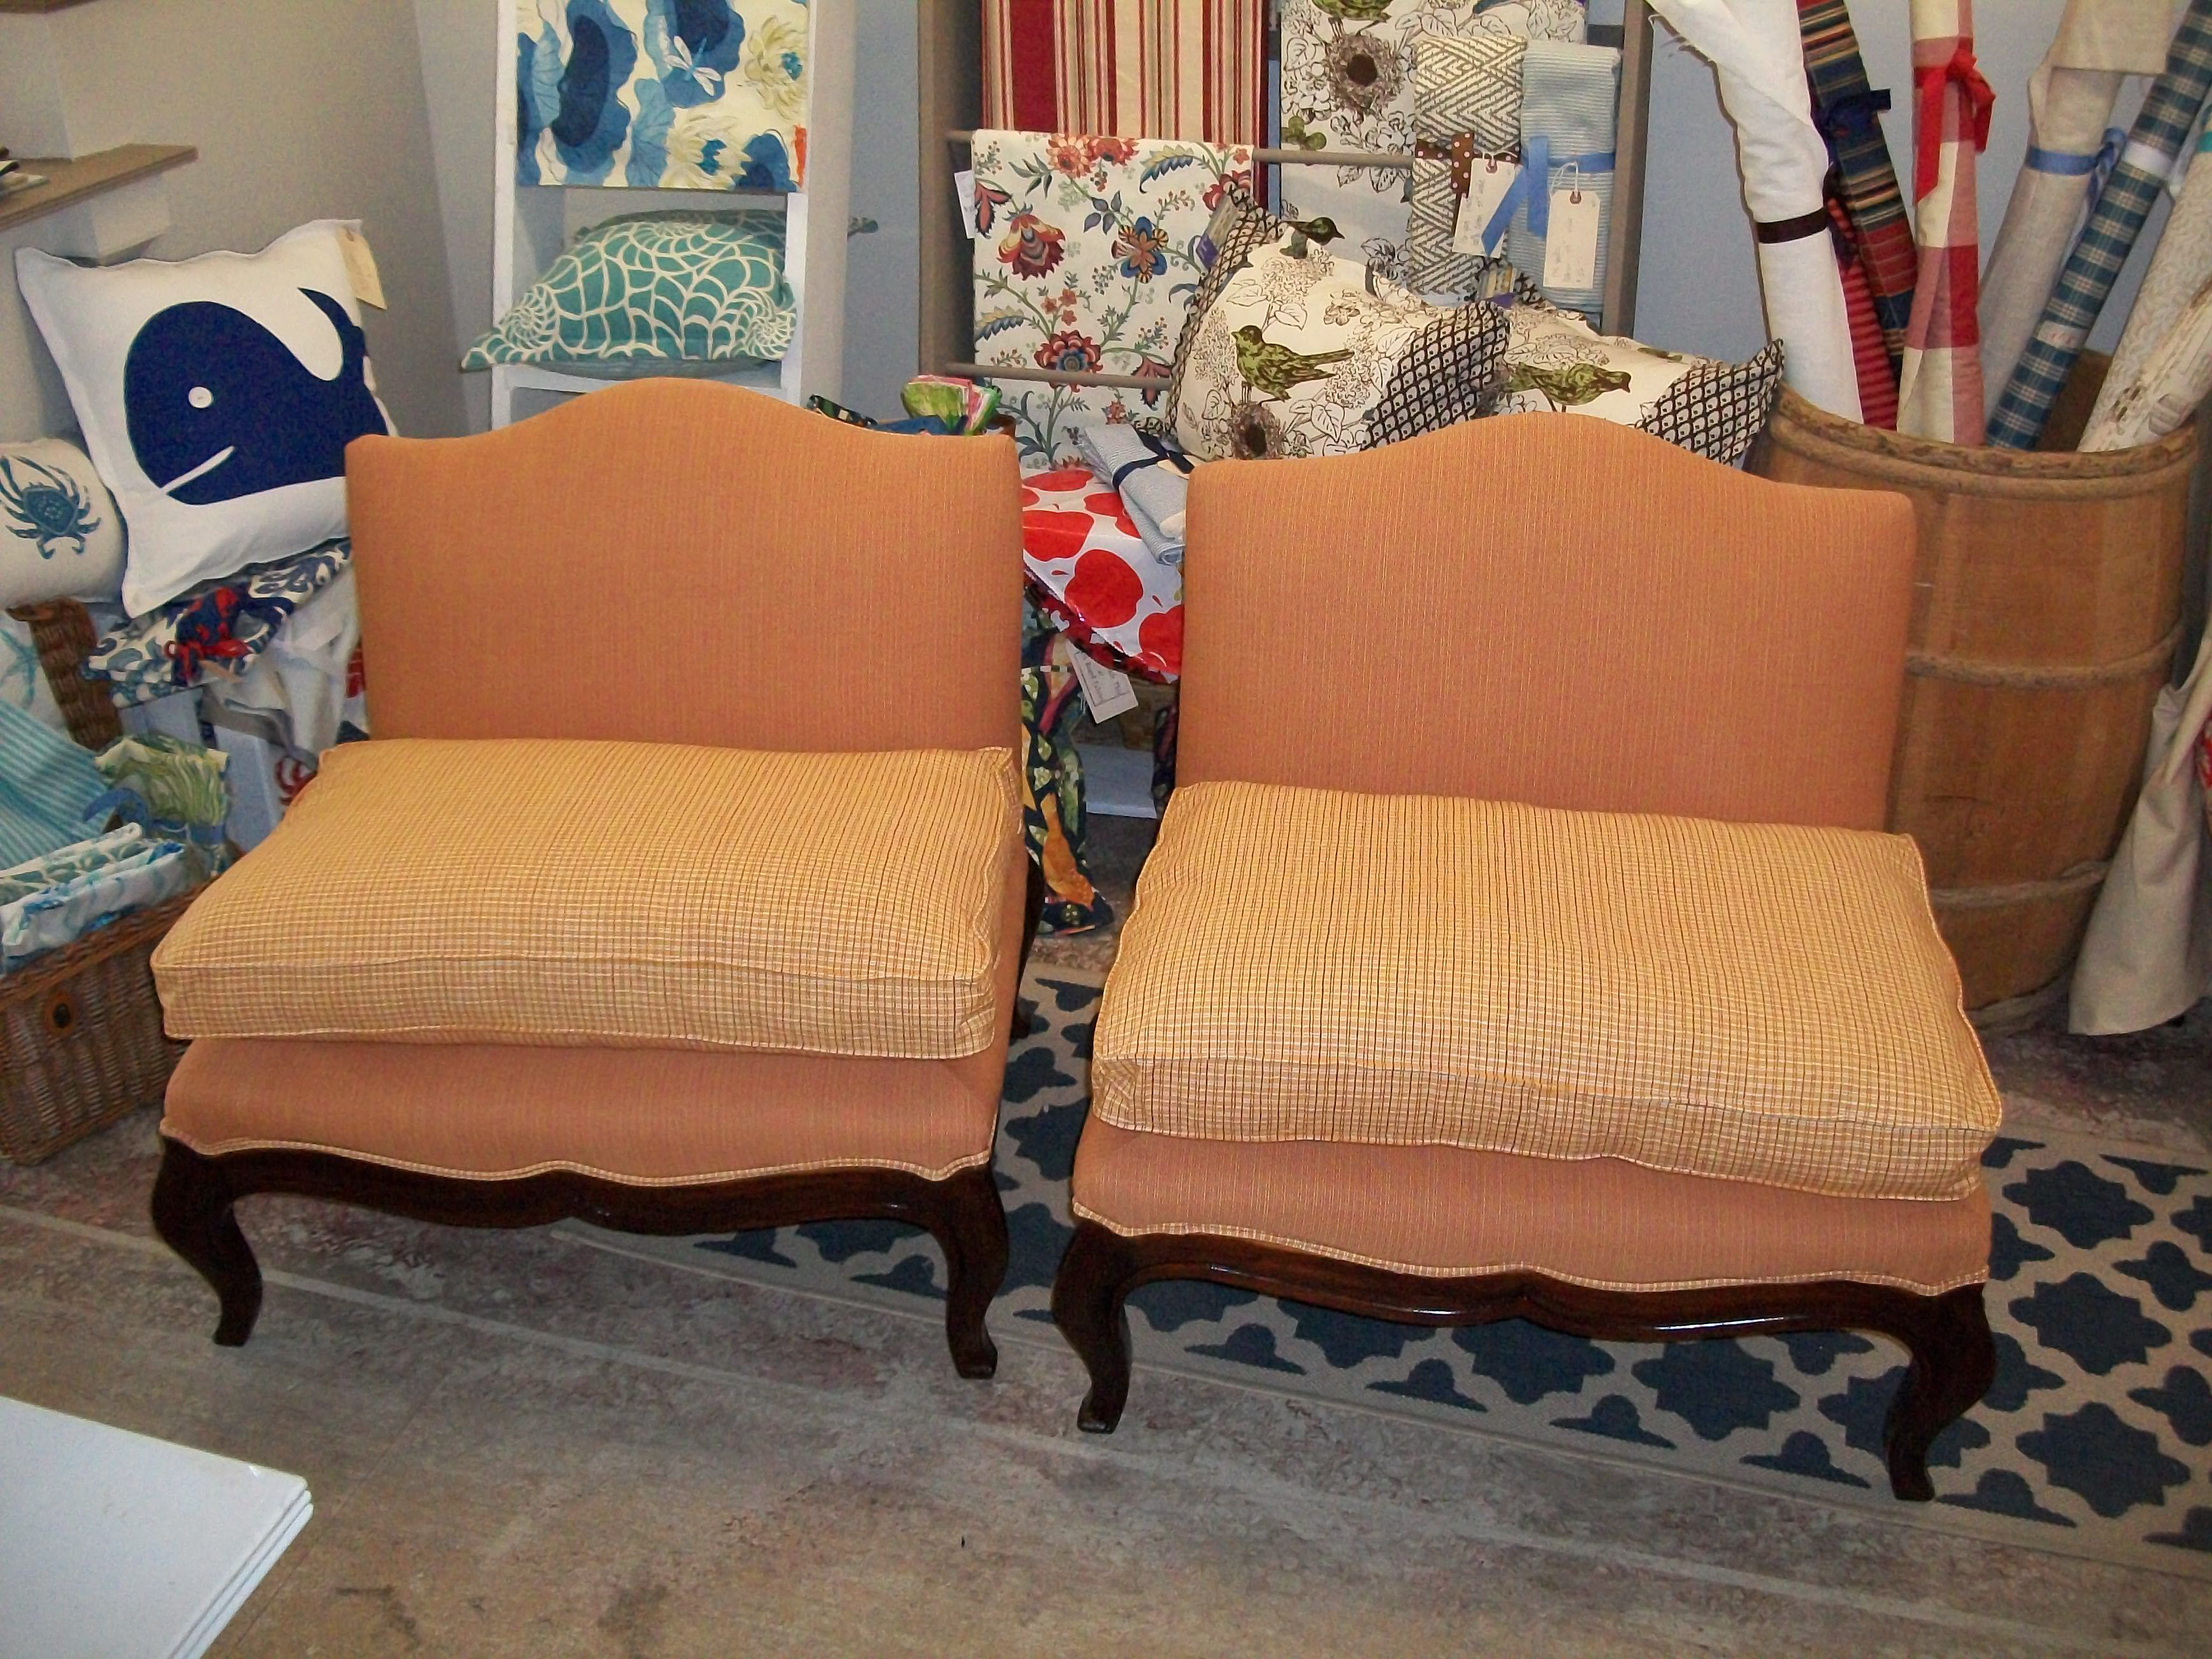 Slipper Chairs In Striped Orange Fabric, With Down Cushions In An Orange  Checked Fabric.